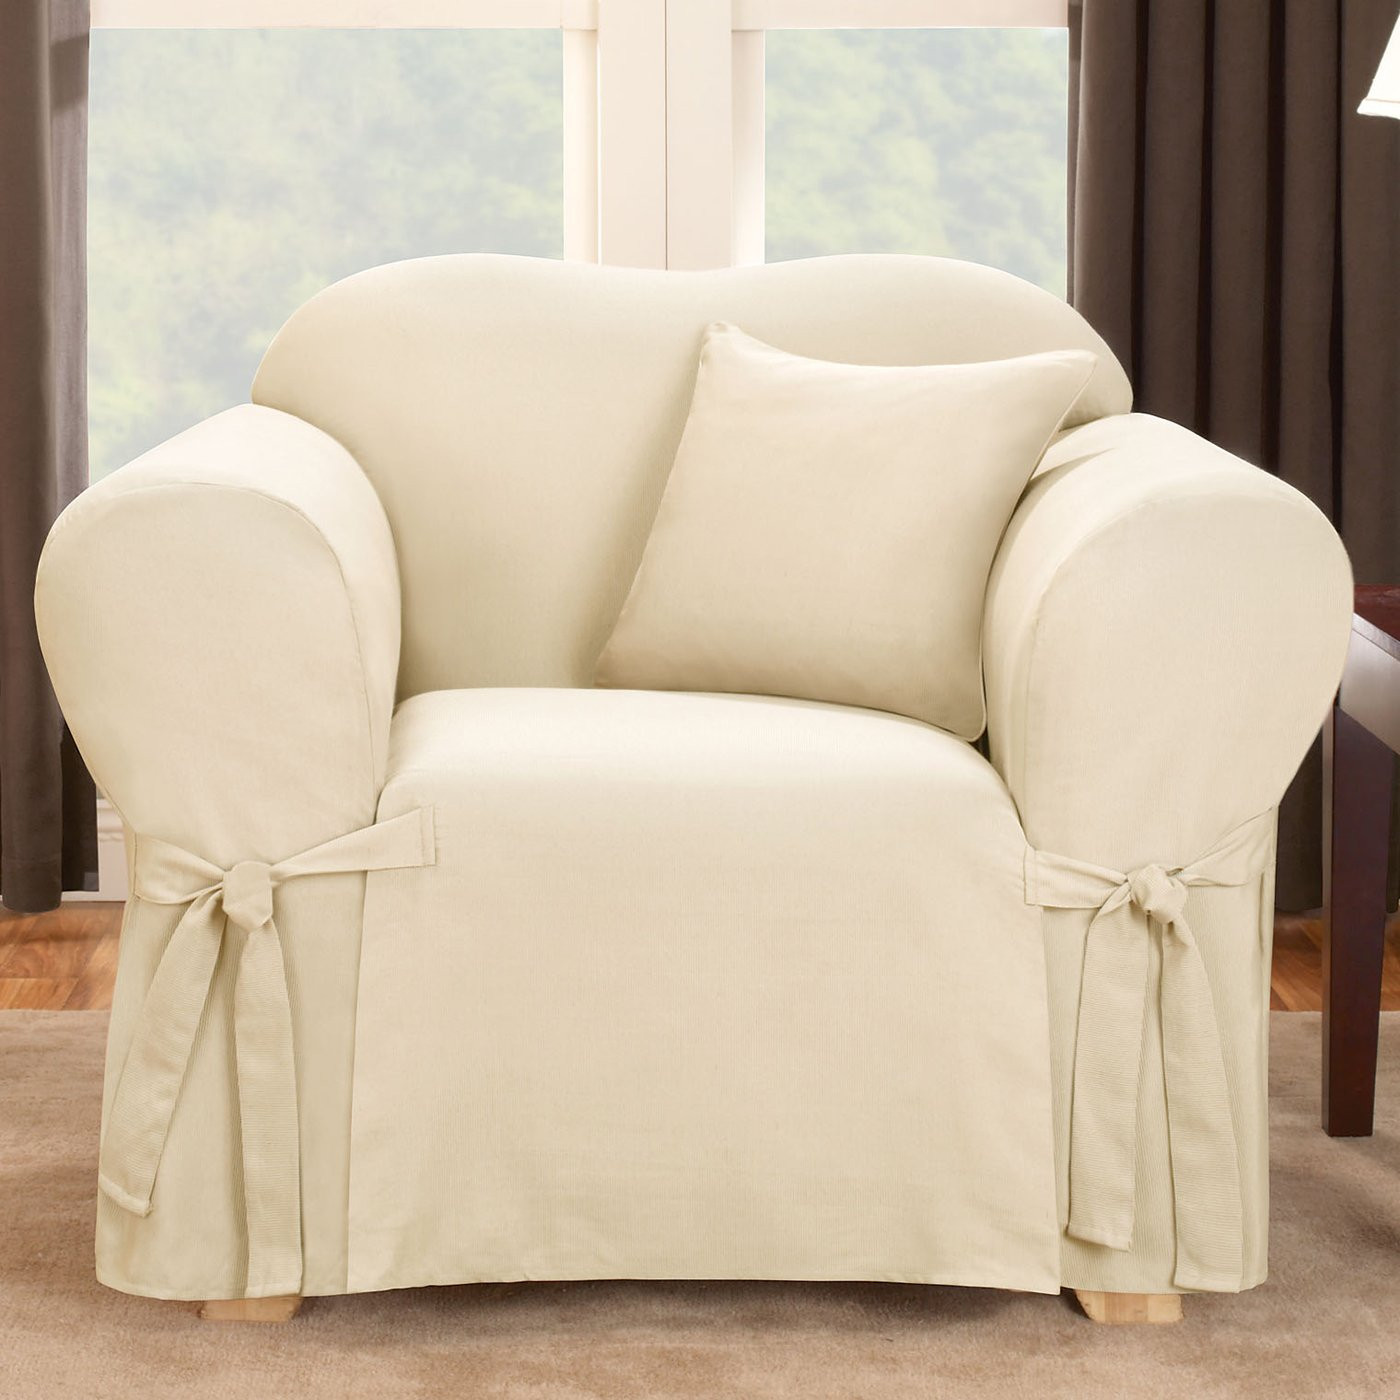 Best ideas about Surefit Chair Cover . Save or Pin Sure Fit Slipcovers Logan Chair Slipcover Now.